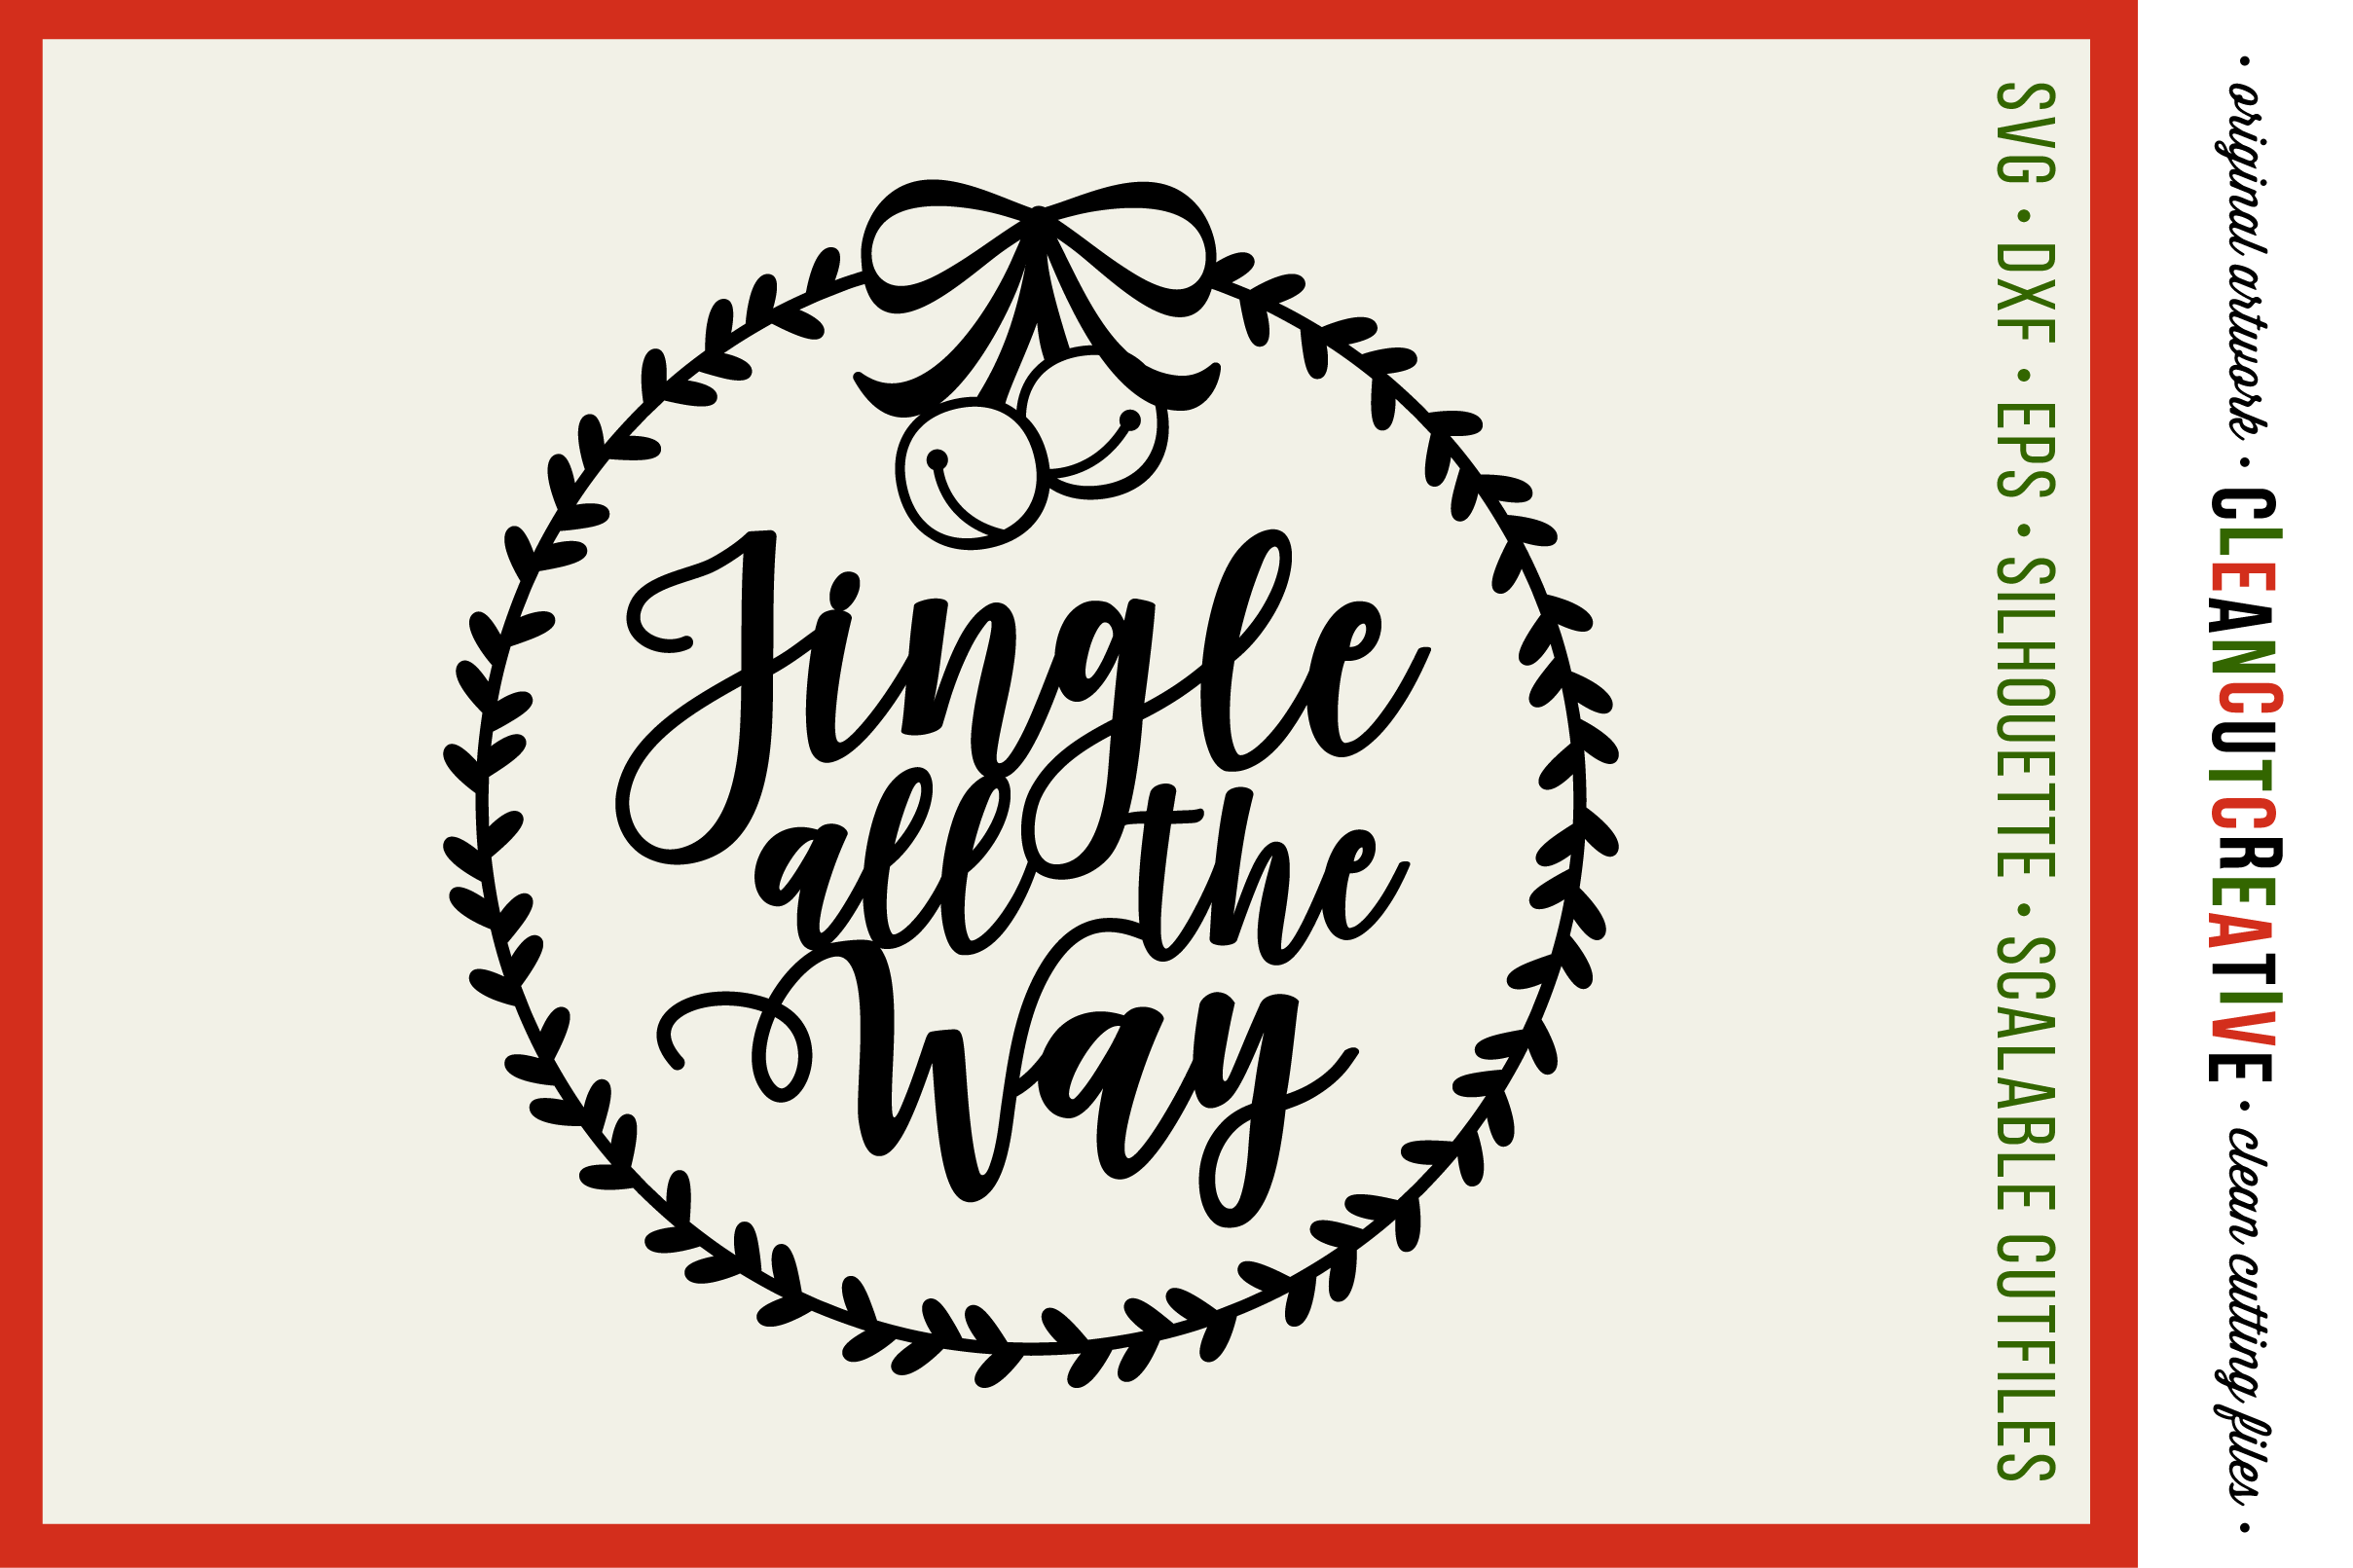 Christmas Wreath Silhouette.Jingle All The Way With Wreath Christmas Designu00a0 Svg Design